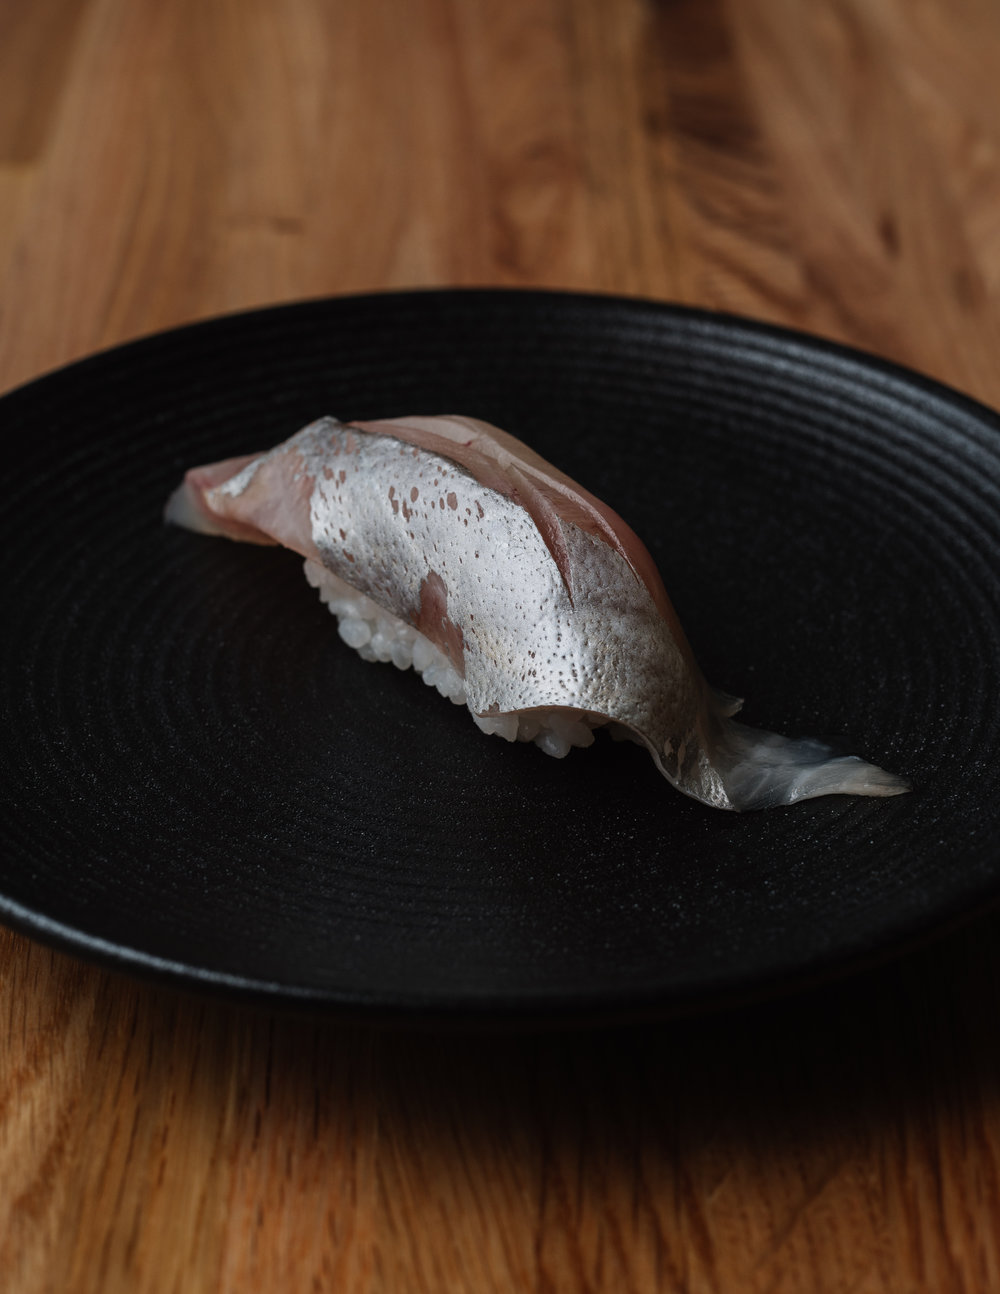 11-horse mackerel (aji) - 鯵.jpg